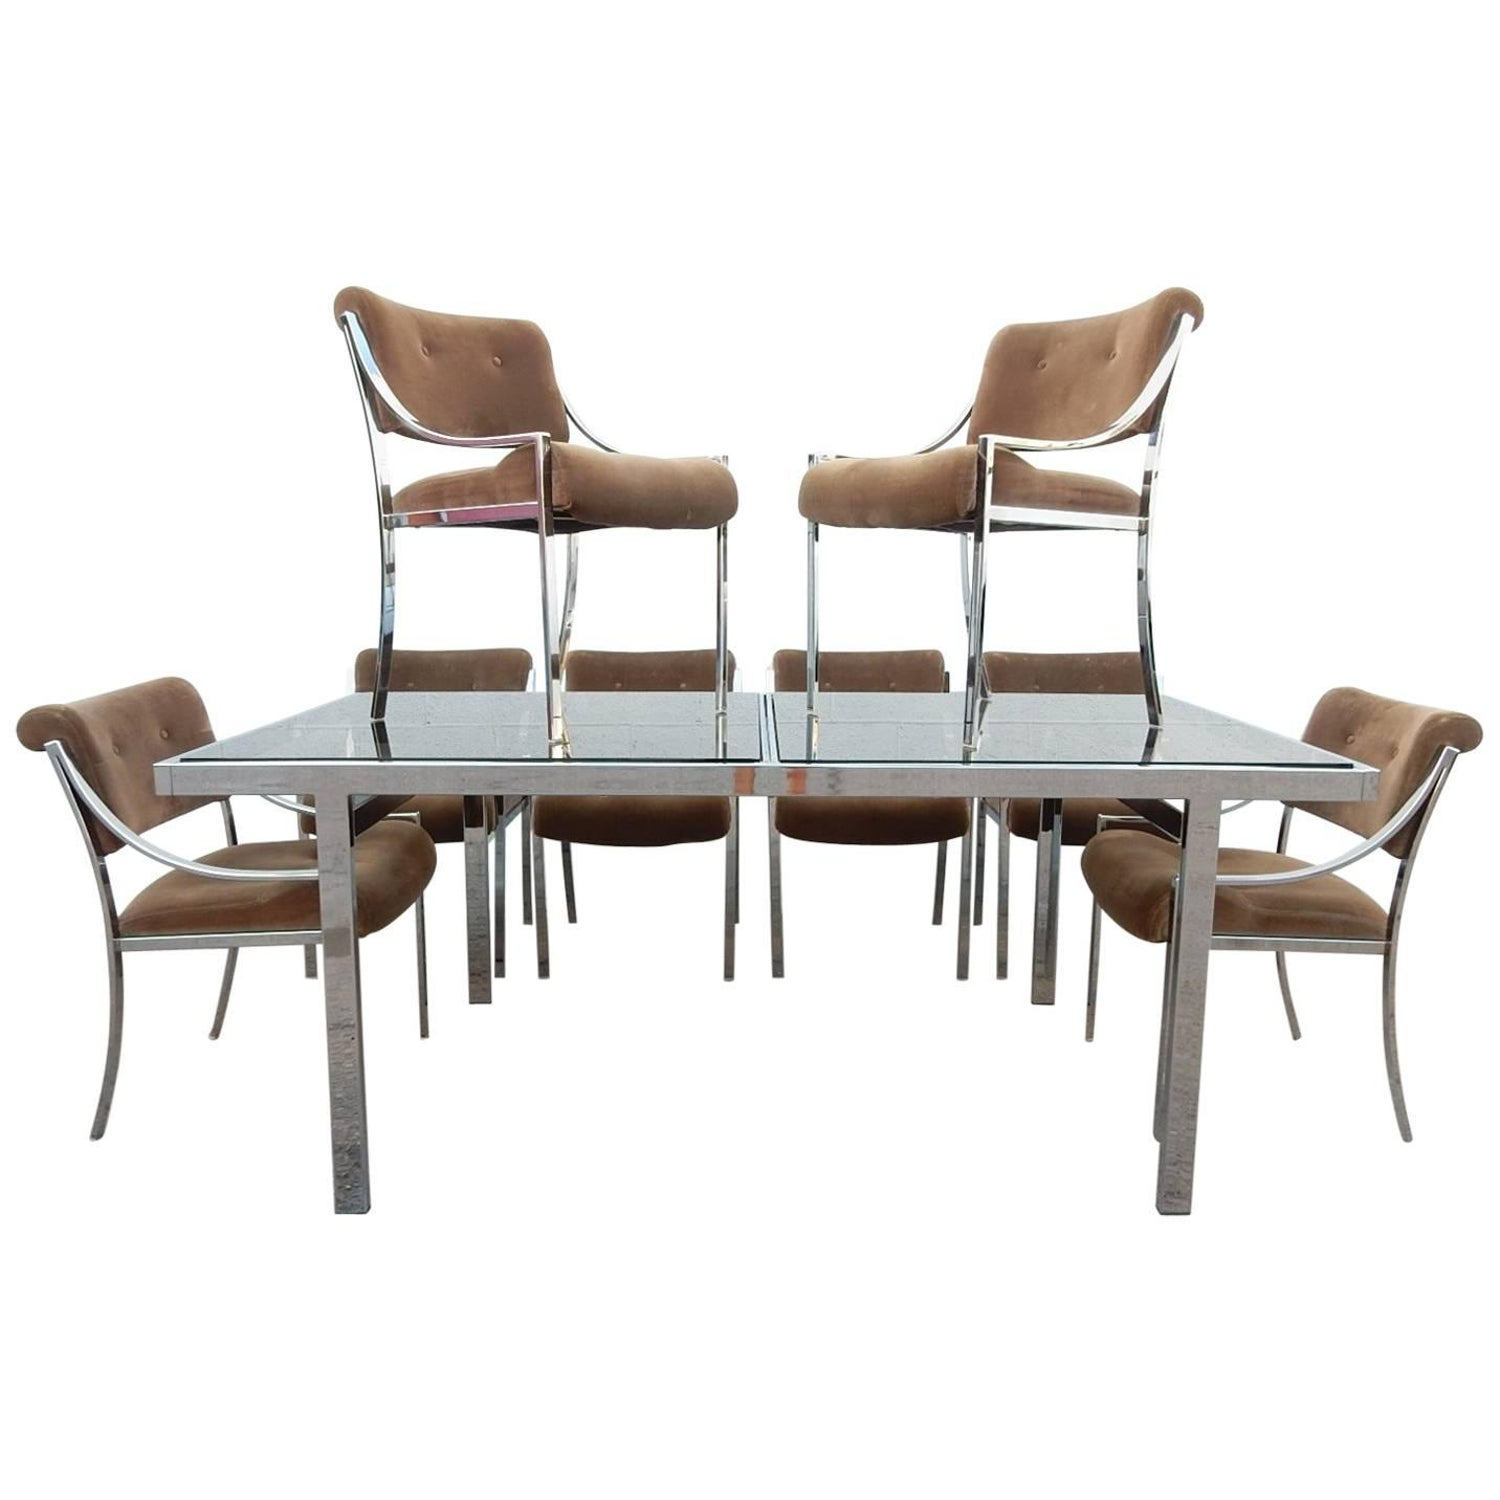 1970s Pierre Cardin Chrome Dining Table with Eight Chairs For Sale